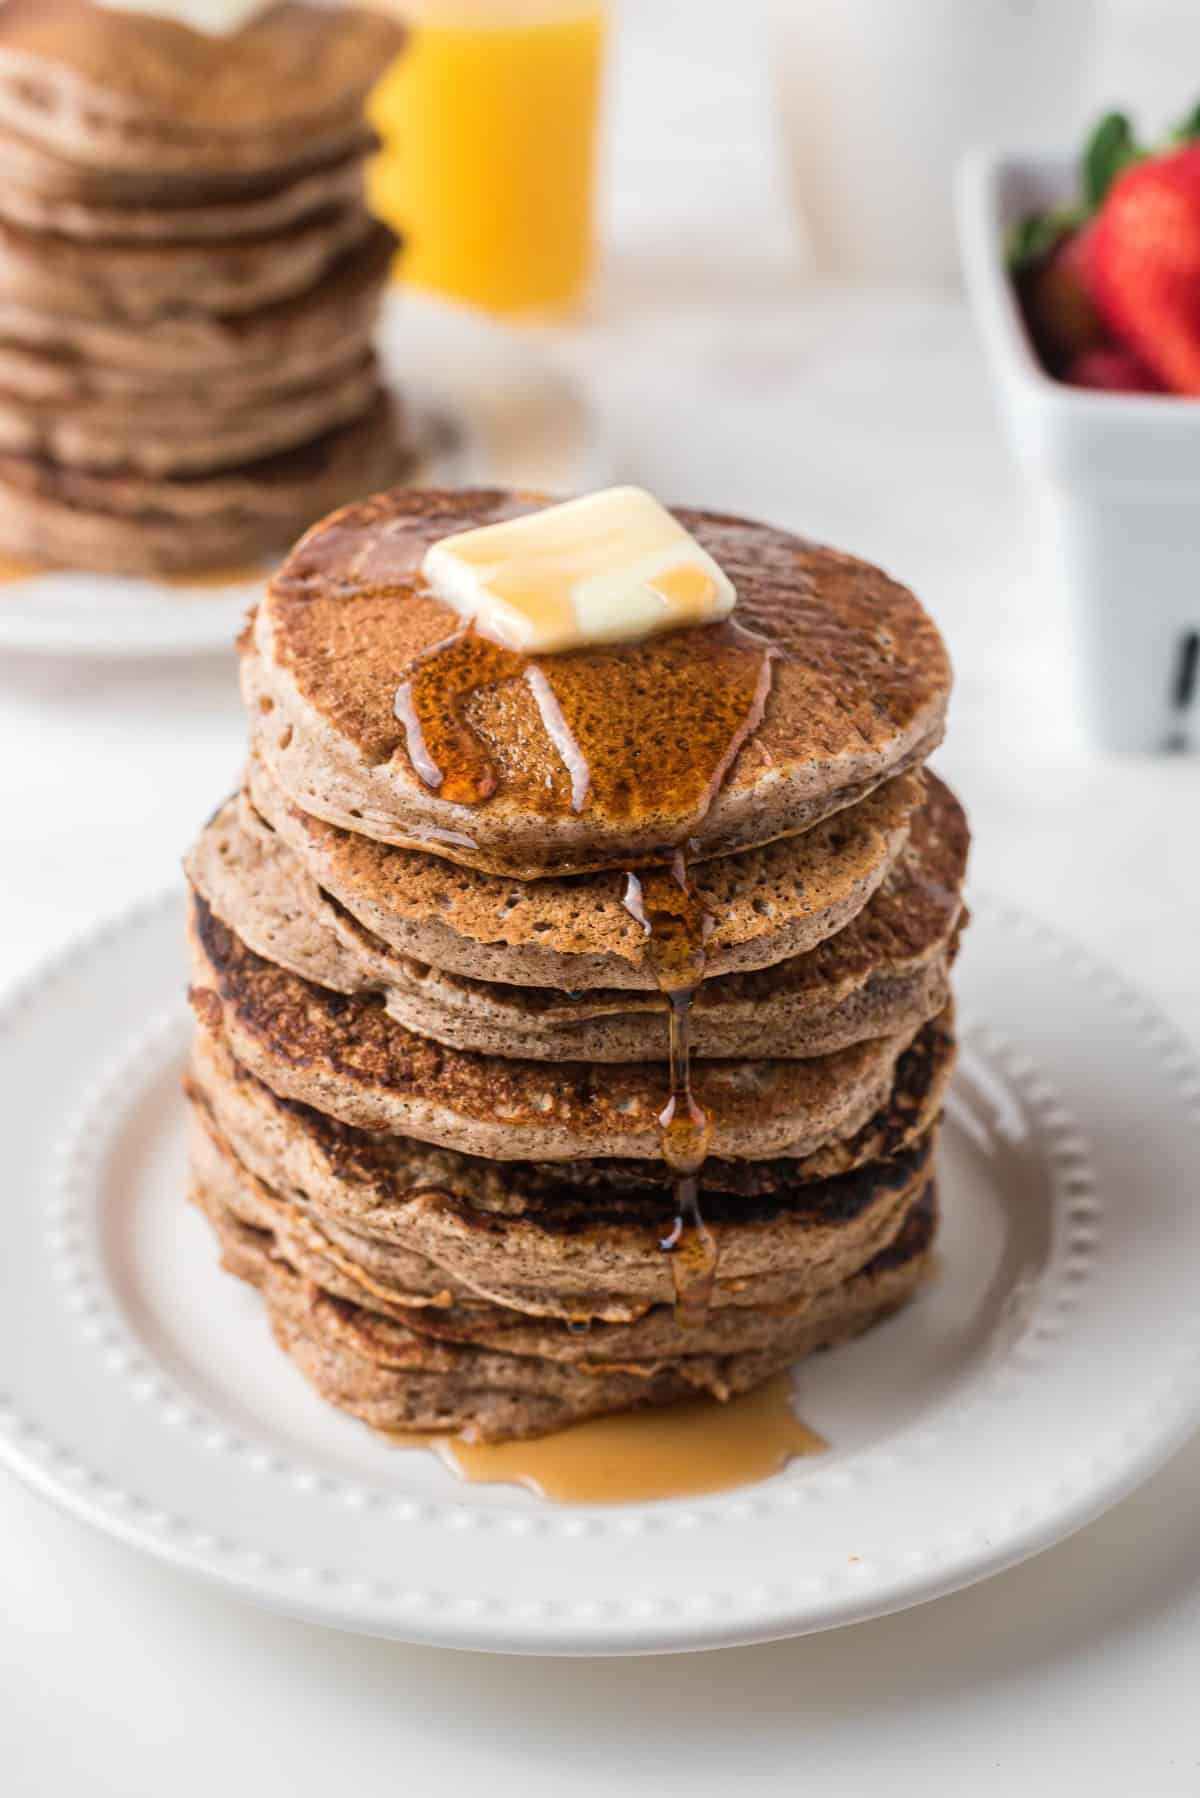 Tall stack of pancakes with butter and syrup.